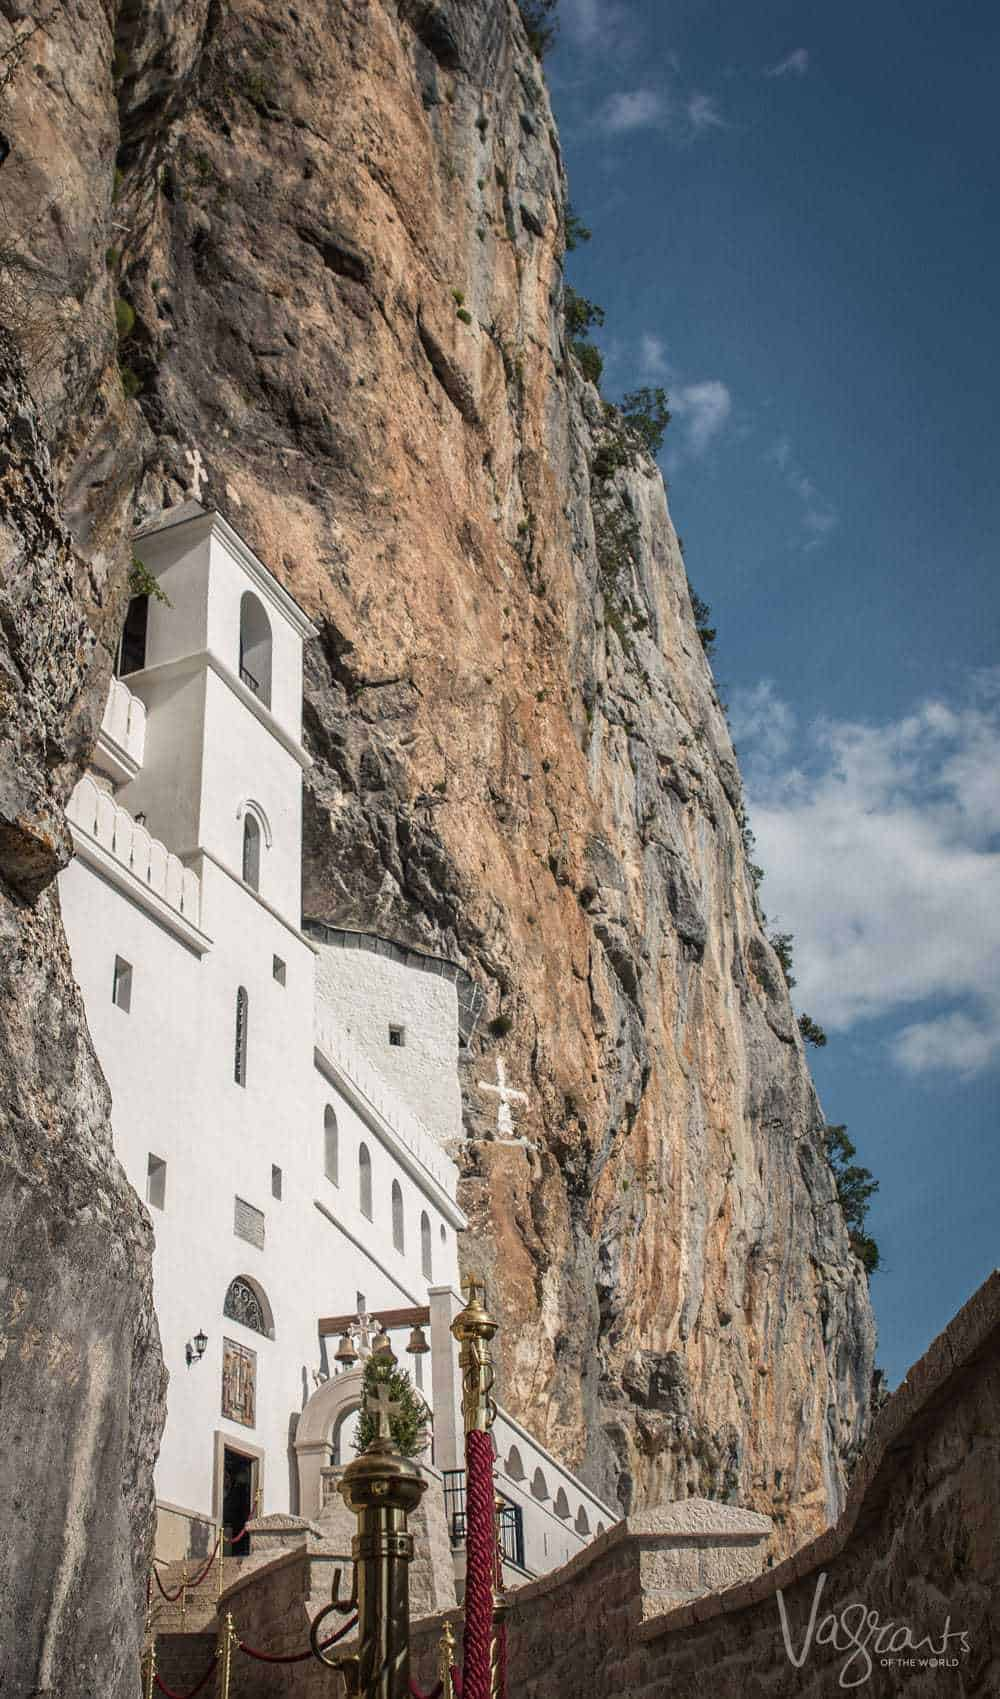 Montenegro - The impressive Ostrog Monastery clings to a cliff face